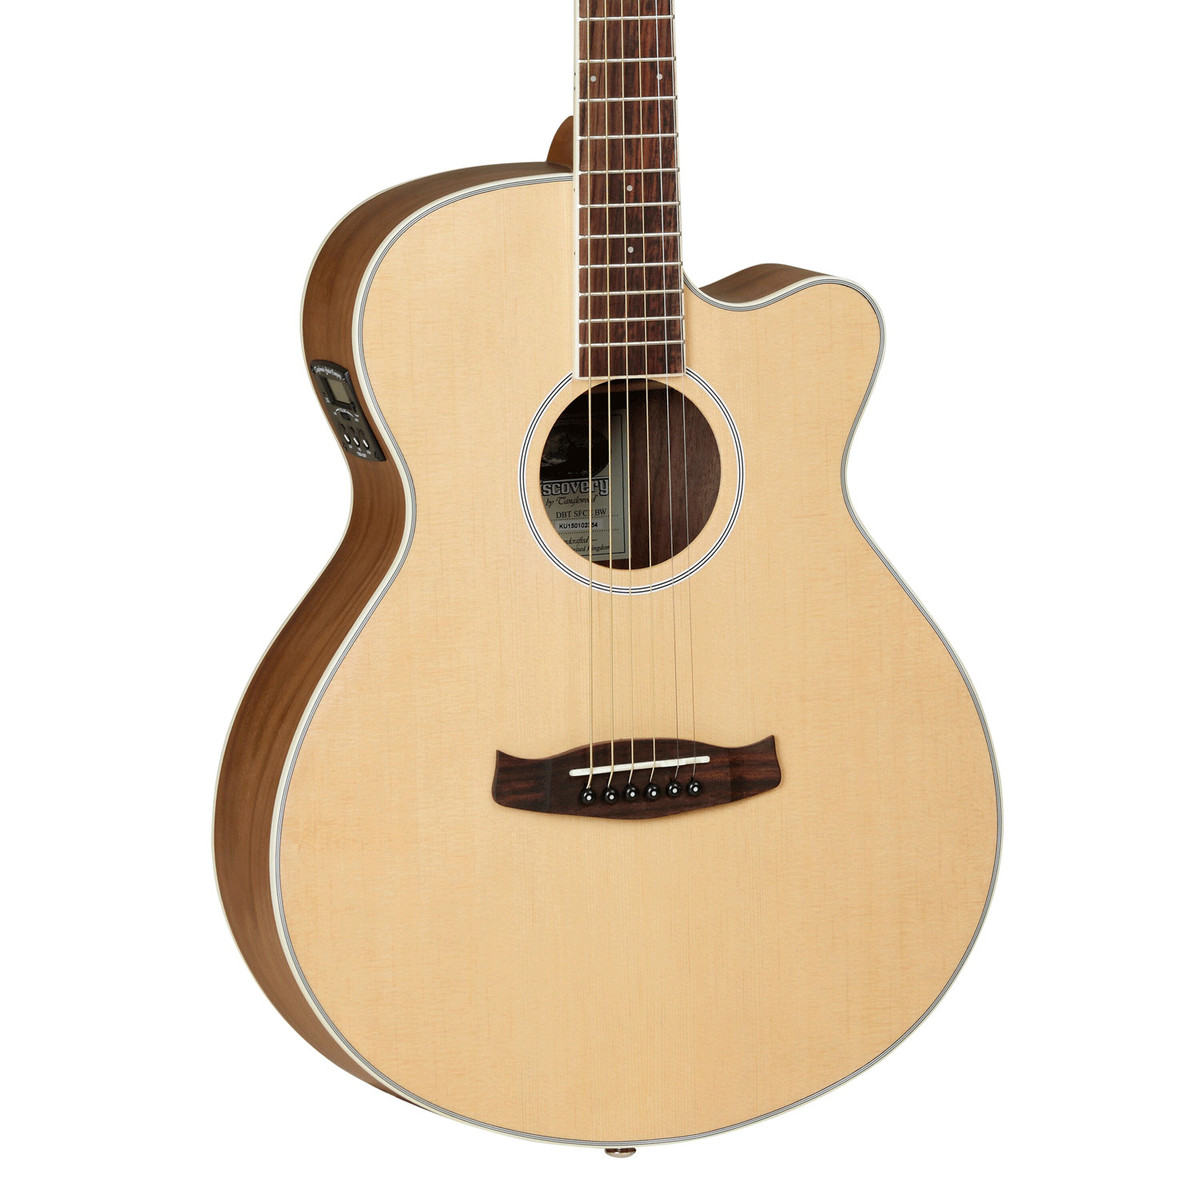 Tanglewood dbt sfce bw discovery series super folk for The tanglewood